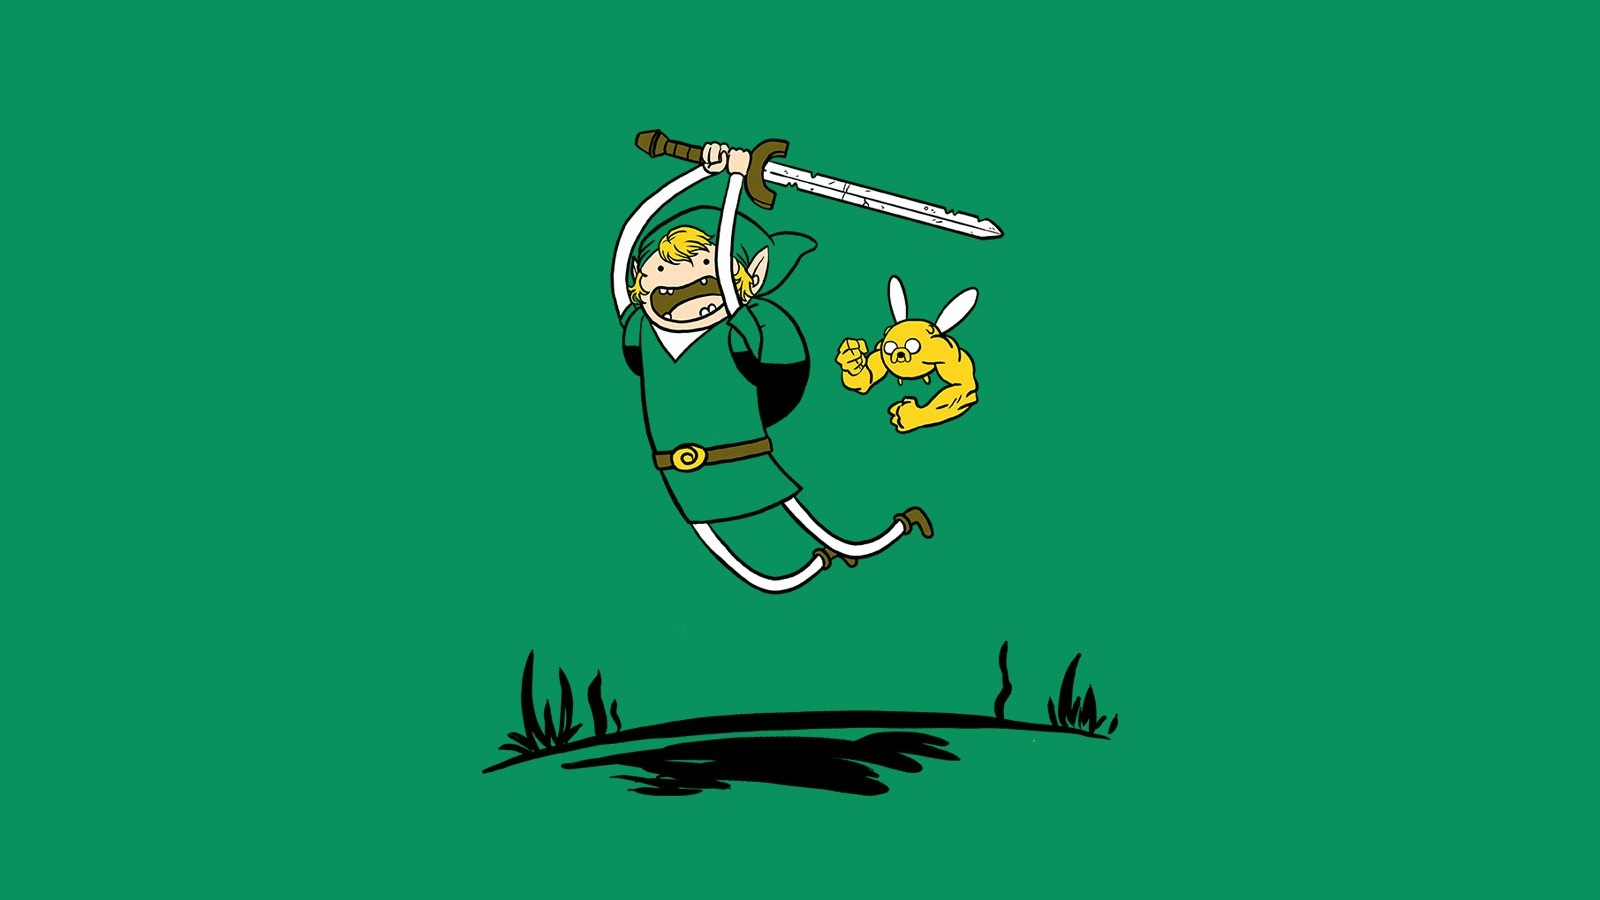 Minimalistic link funny adventure time wallpaper allwallpaper minimalistic link funny adventure time wallpaper thecheapjerseys Choice Image